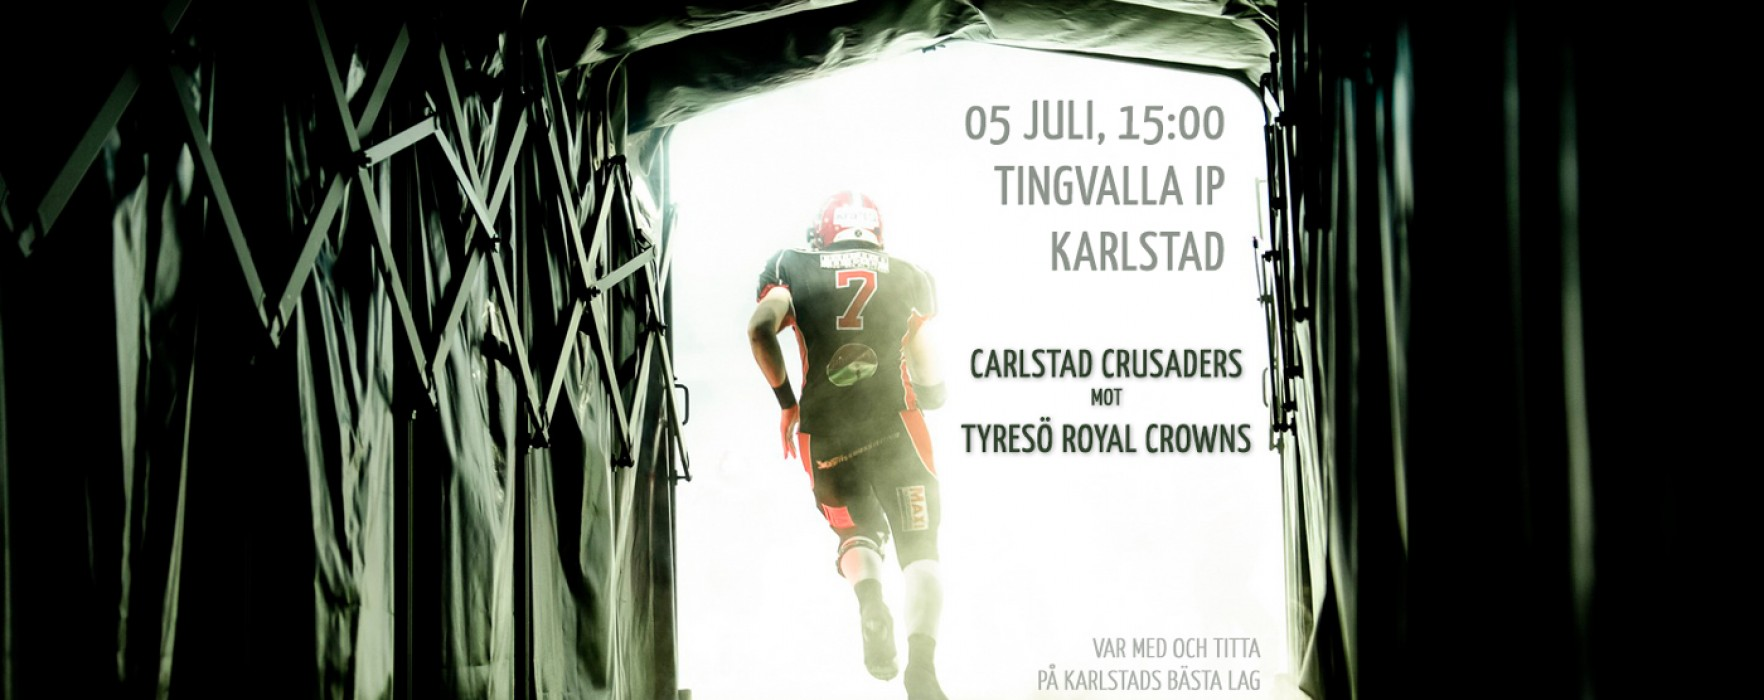 Carlstad Crusaders–Tyresö Royal Crowns